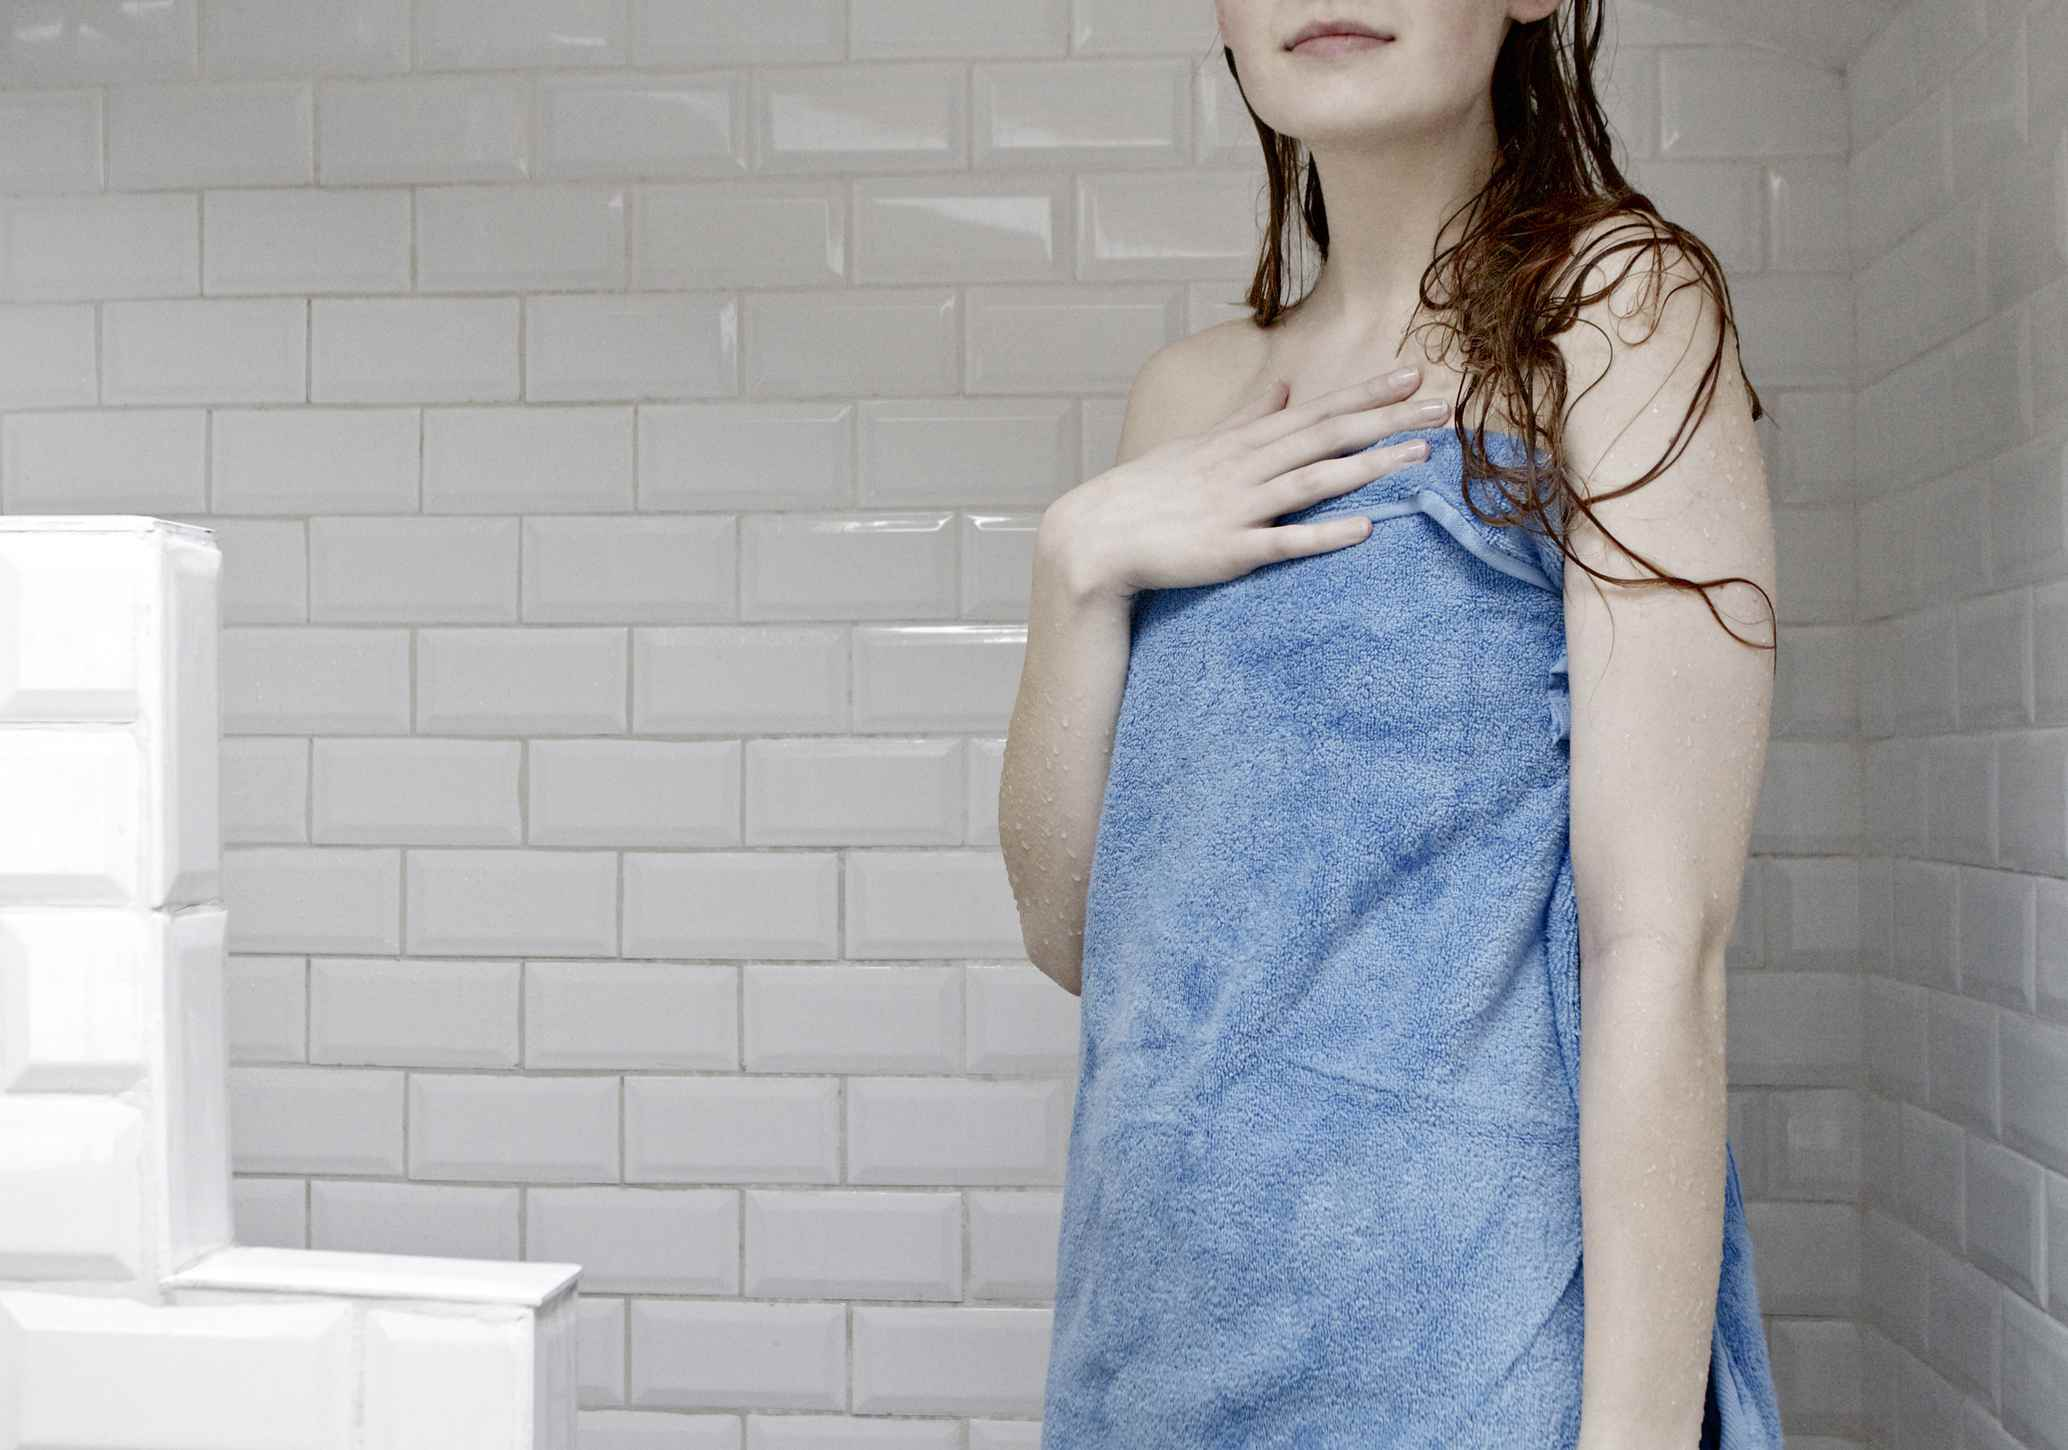 Woman in a towel from shower